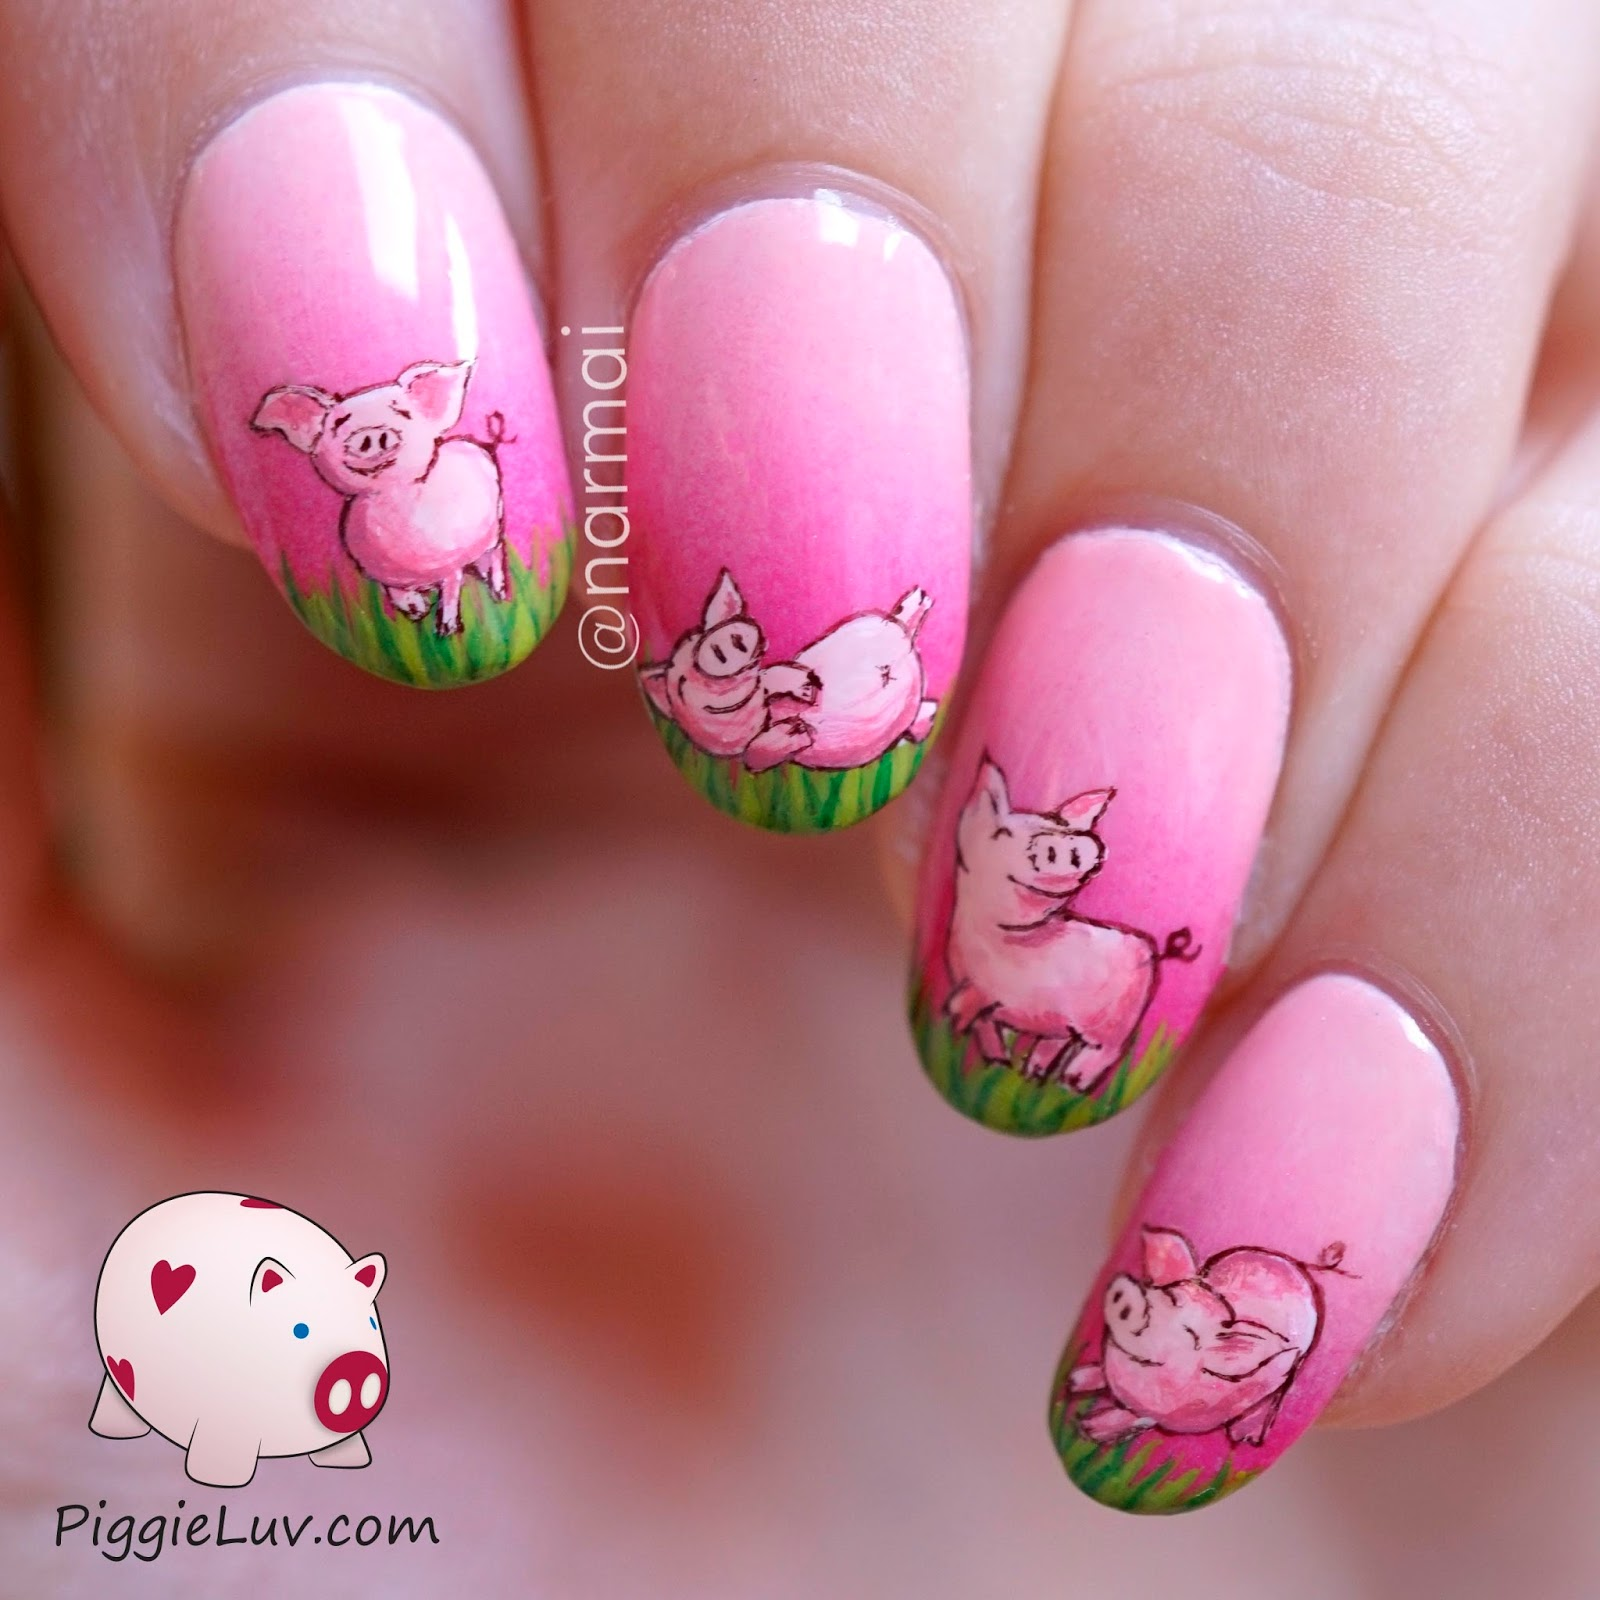 Adorable Nail Art: PiggieLuv: Cute Piglet Nail Art For My 3rd Blogiversary